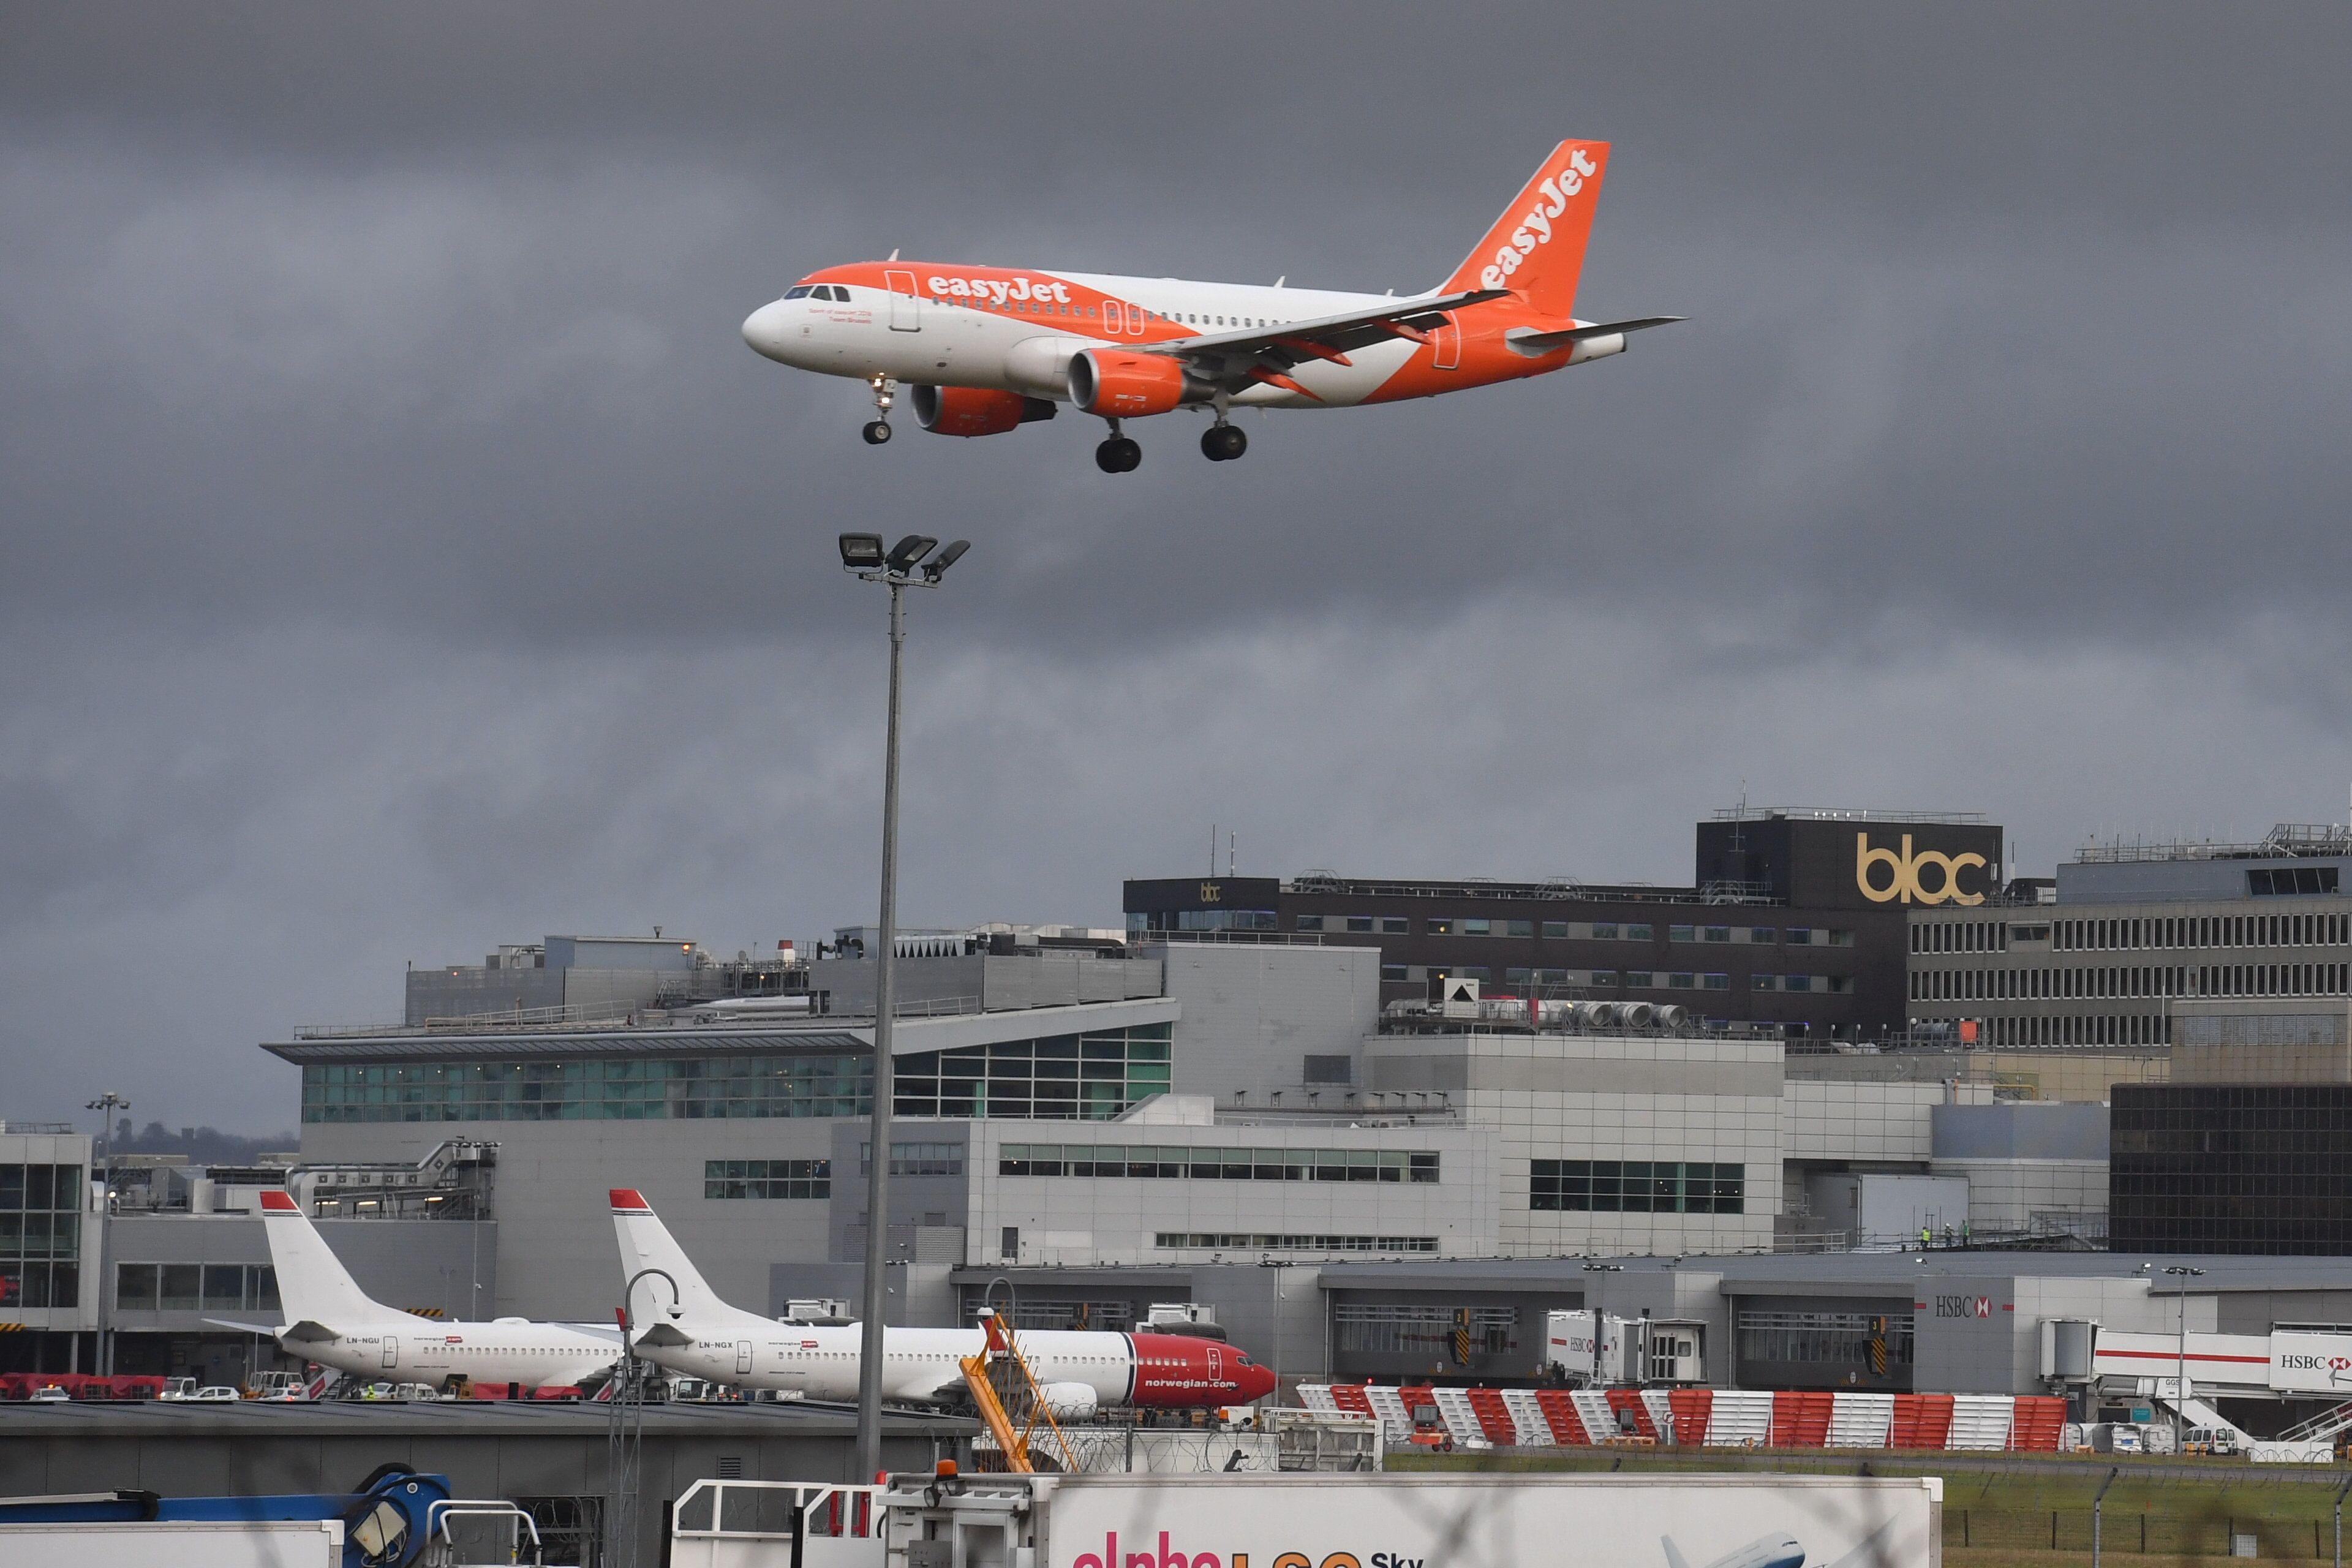 Gatwick Drone Chaos Cost EasyJet £10 Million, Airline